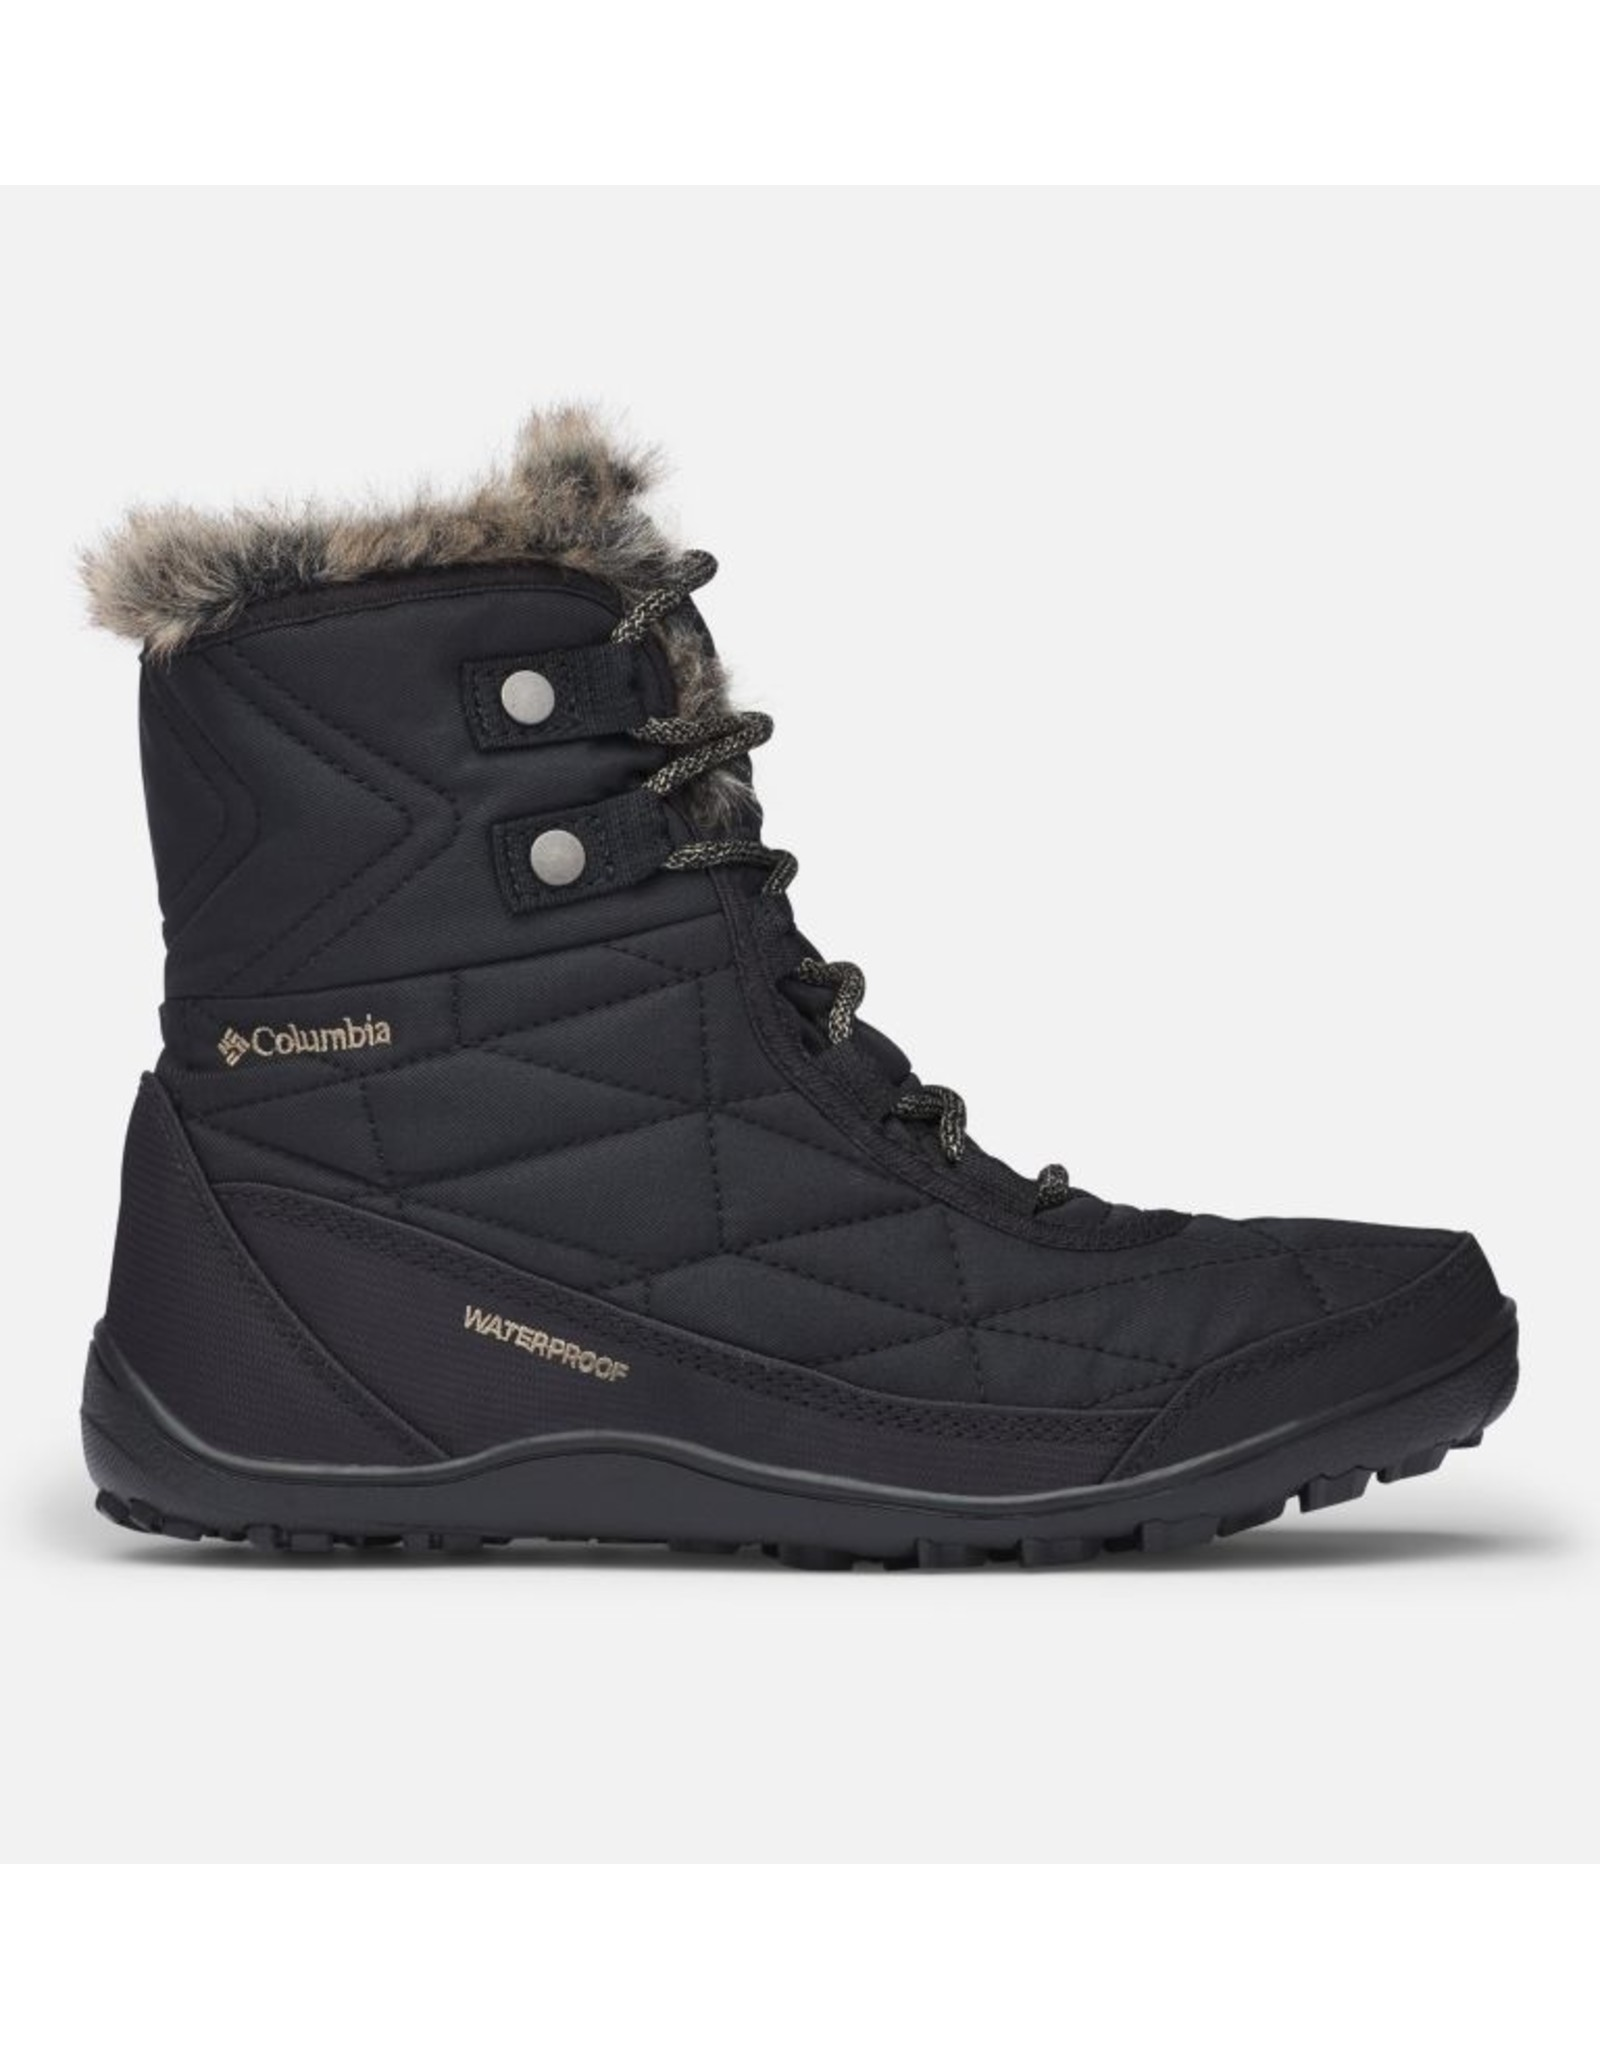 COLUMBIA SPORTSWEAR MINX SHORTY III BOOT